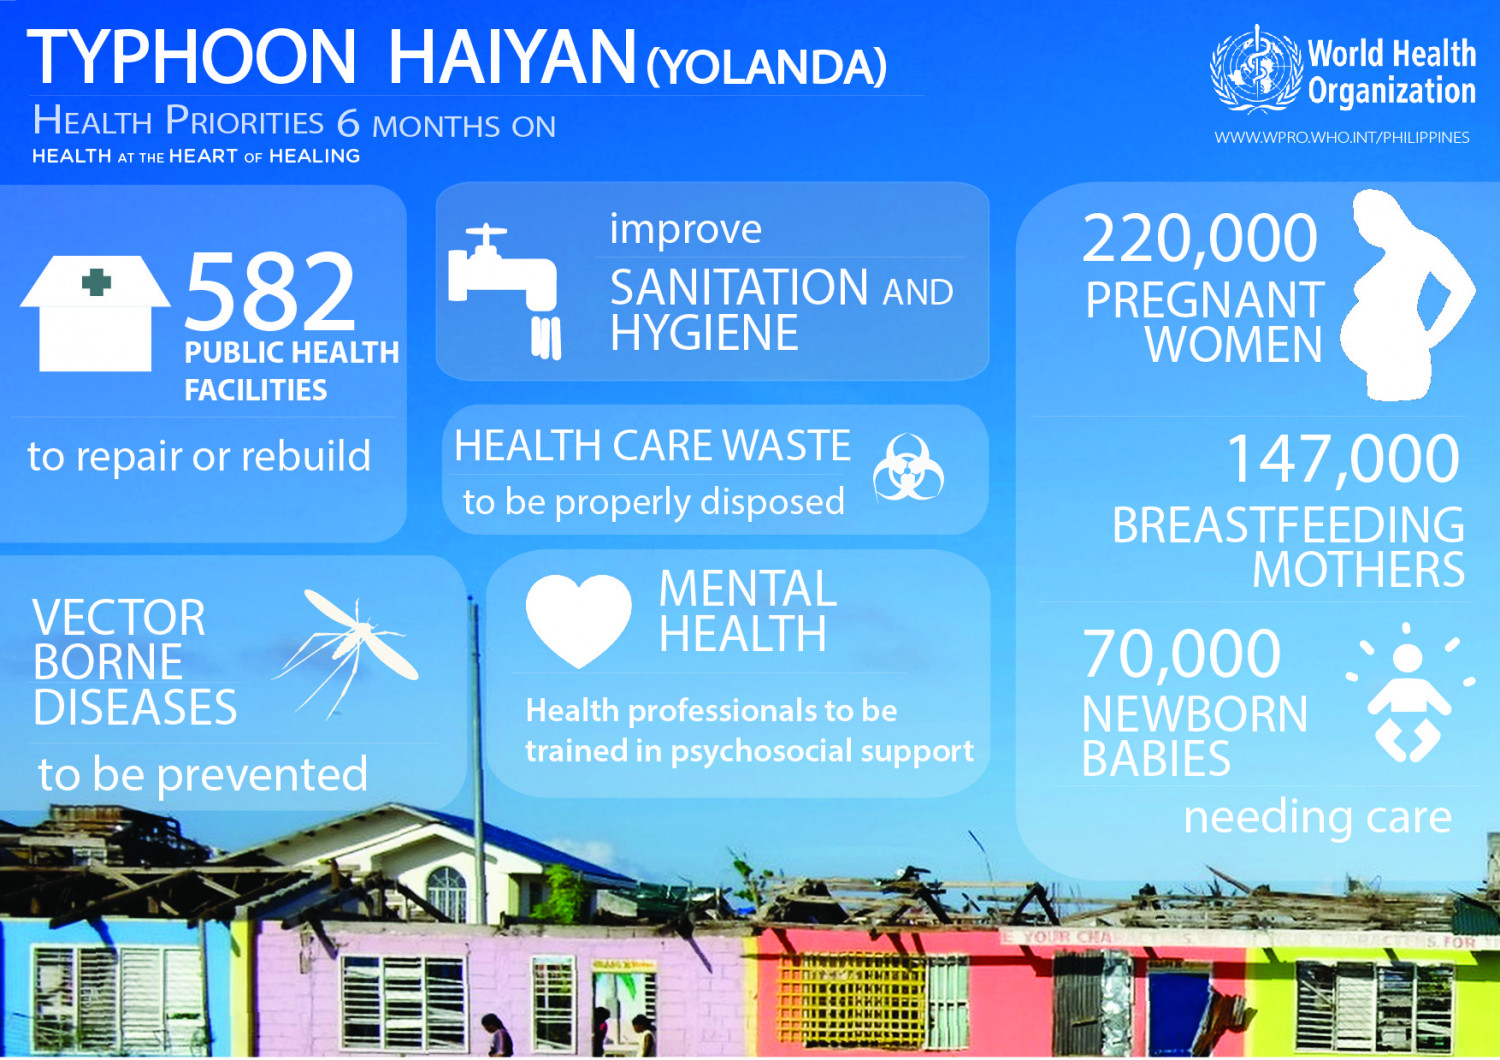 Health Priorities 6 months after Typhoon Haiyan (Yolanda) Infographic